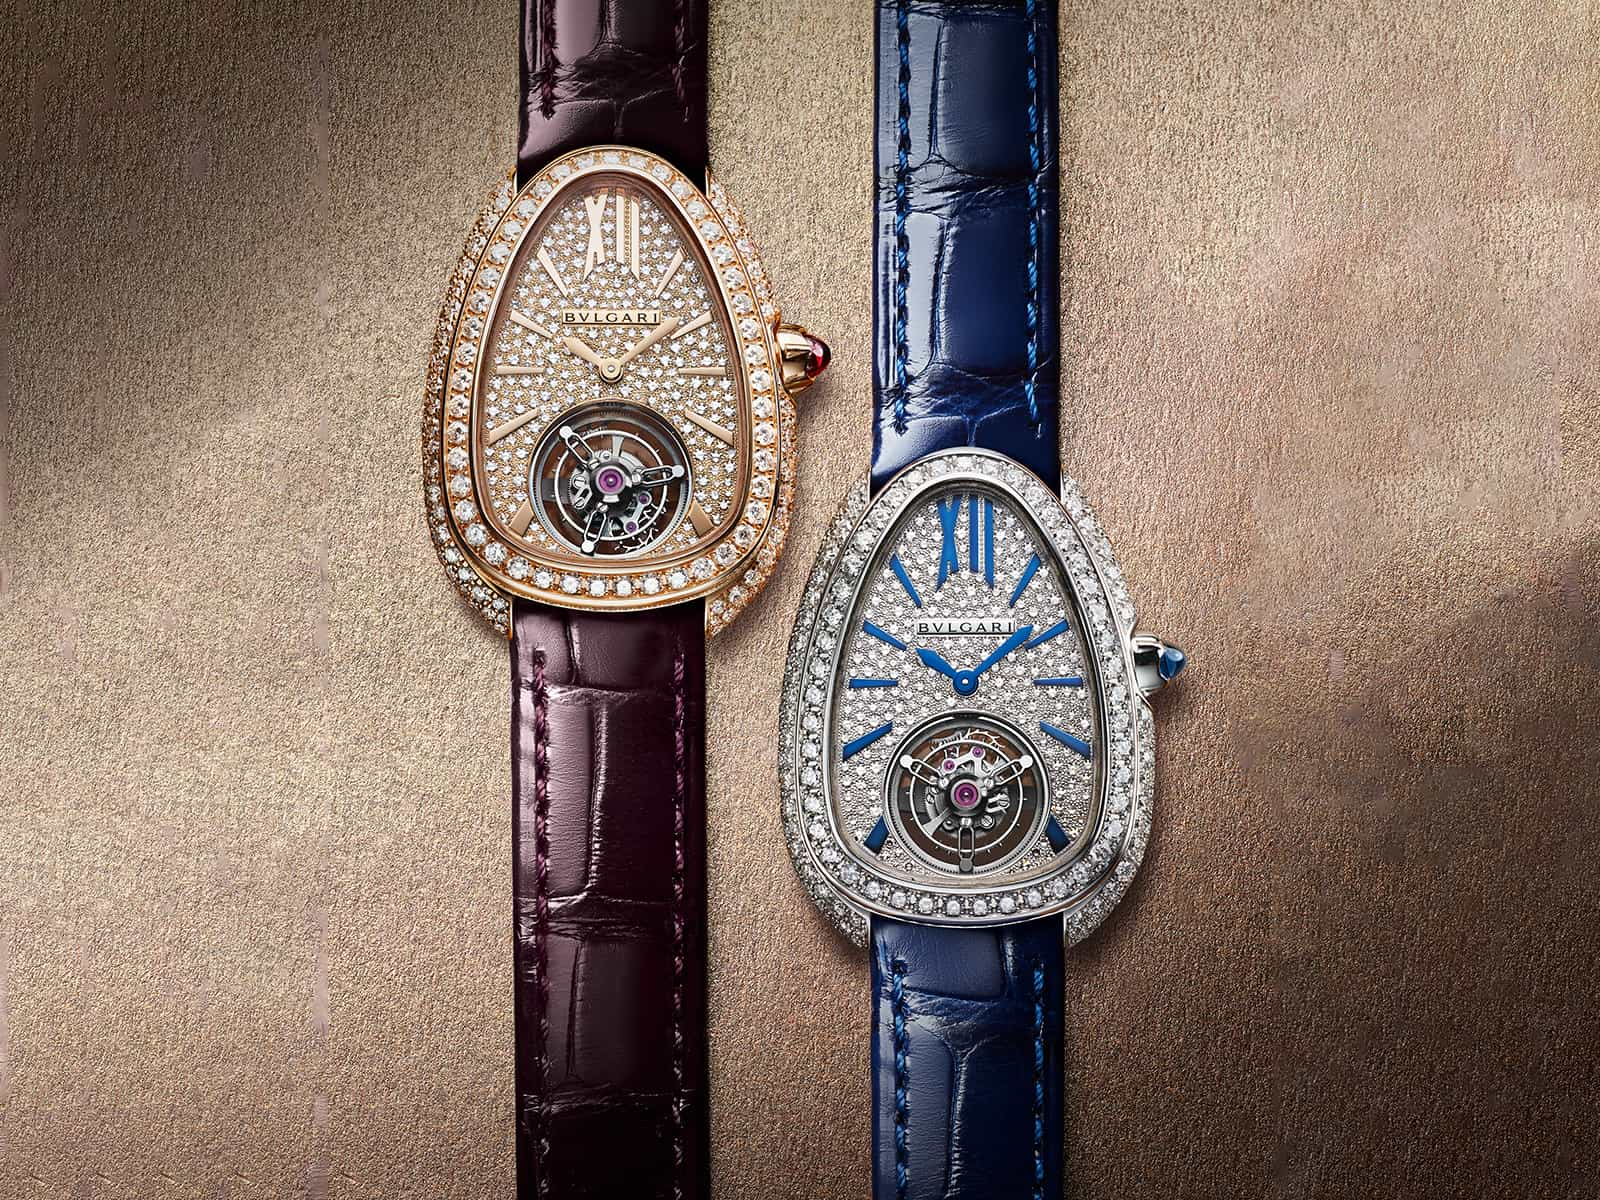 bulgari-serpenti-seduttori-tourbillon-rose-gold-white-gold.jpg